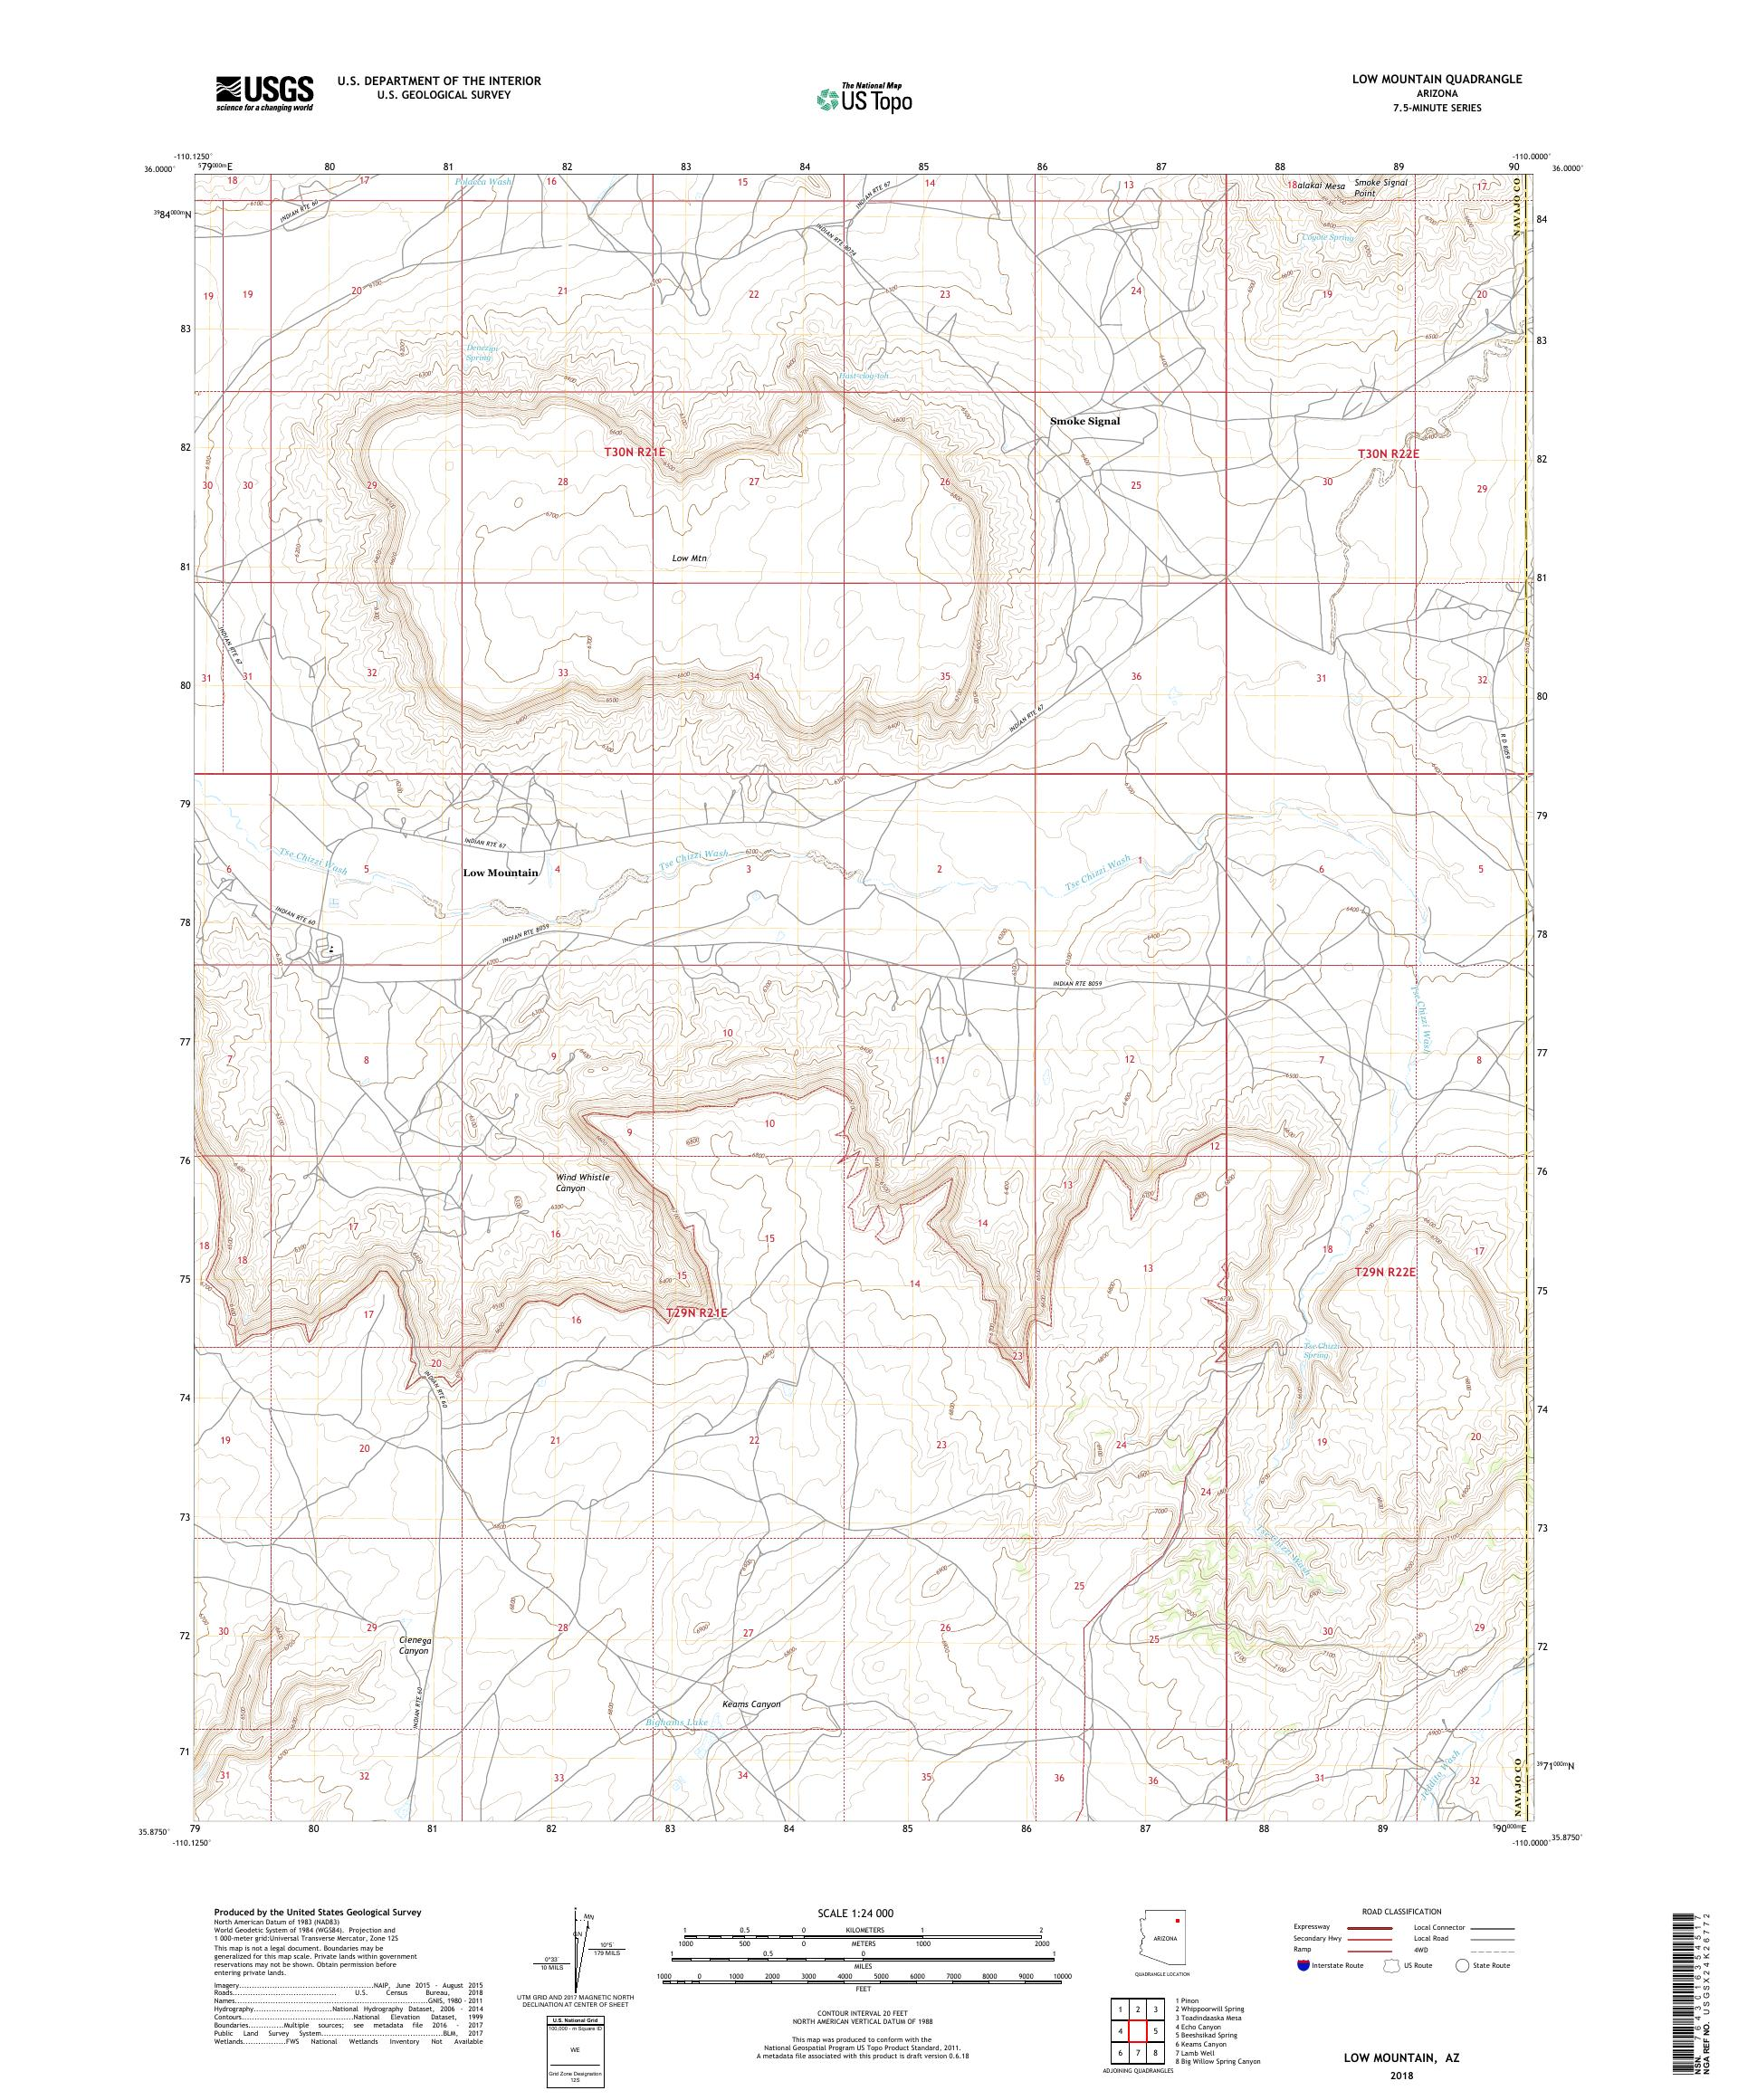 MyTopo Low Mountain, Arizona USGS Quad Topo Map